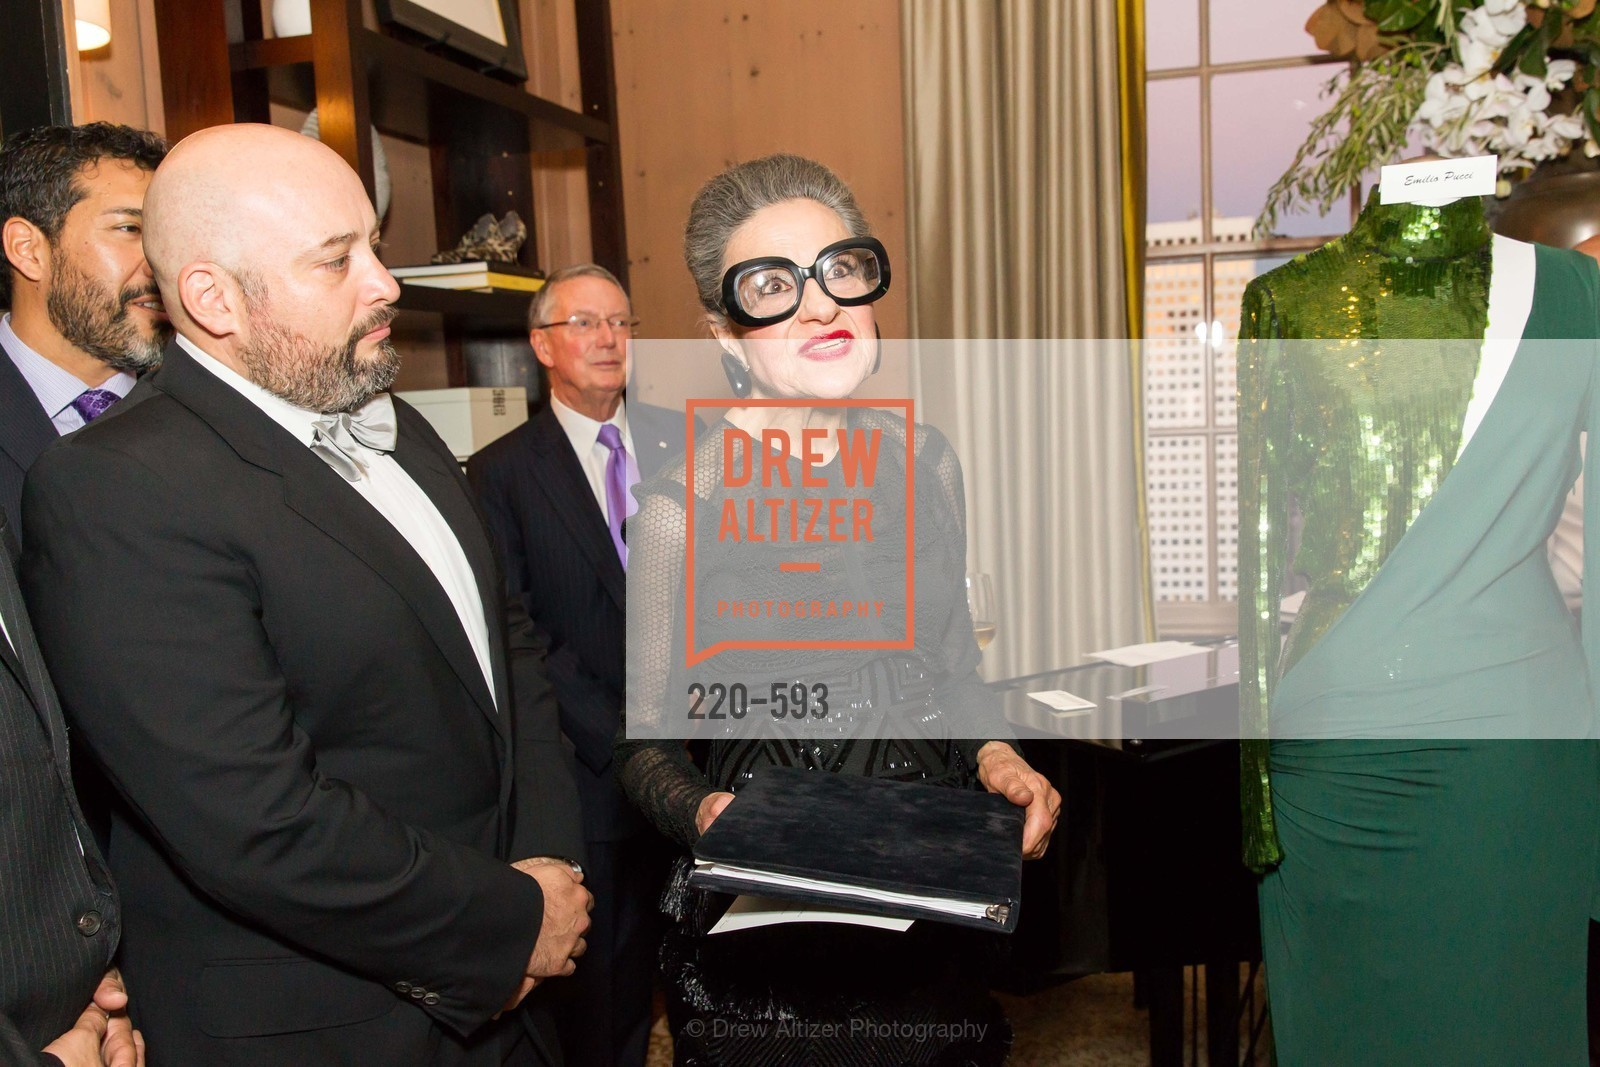 Alfredo Pedroza, Joy Venturini Bianchi, COUTURE FOR A CAUSE, US, October 4th, 2014,Drew Altizer, Drew Altizer Photography, full-service agency, private events, San Francisco photographer, photographer california